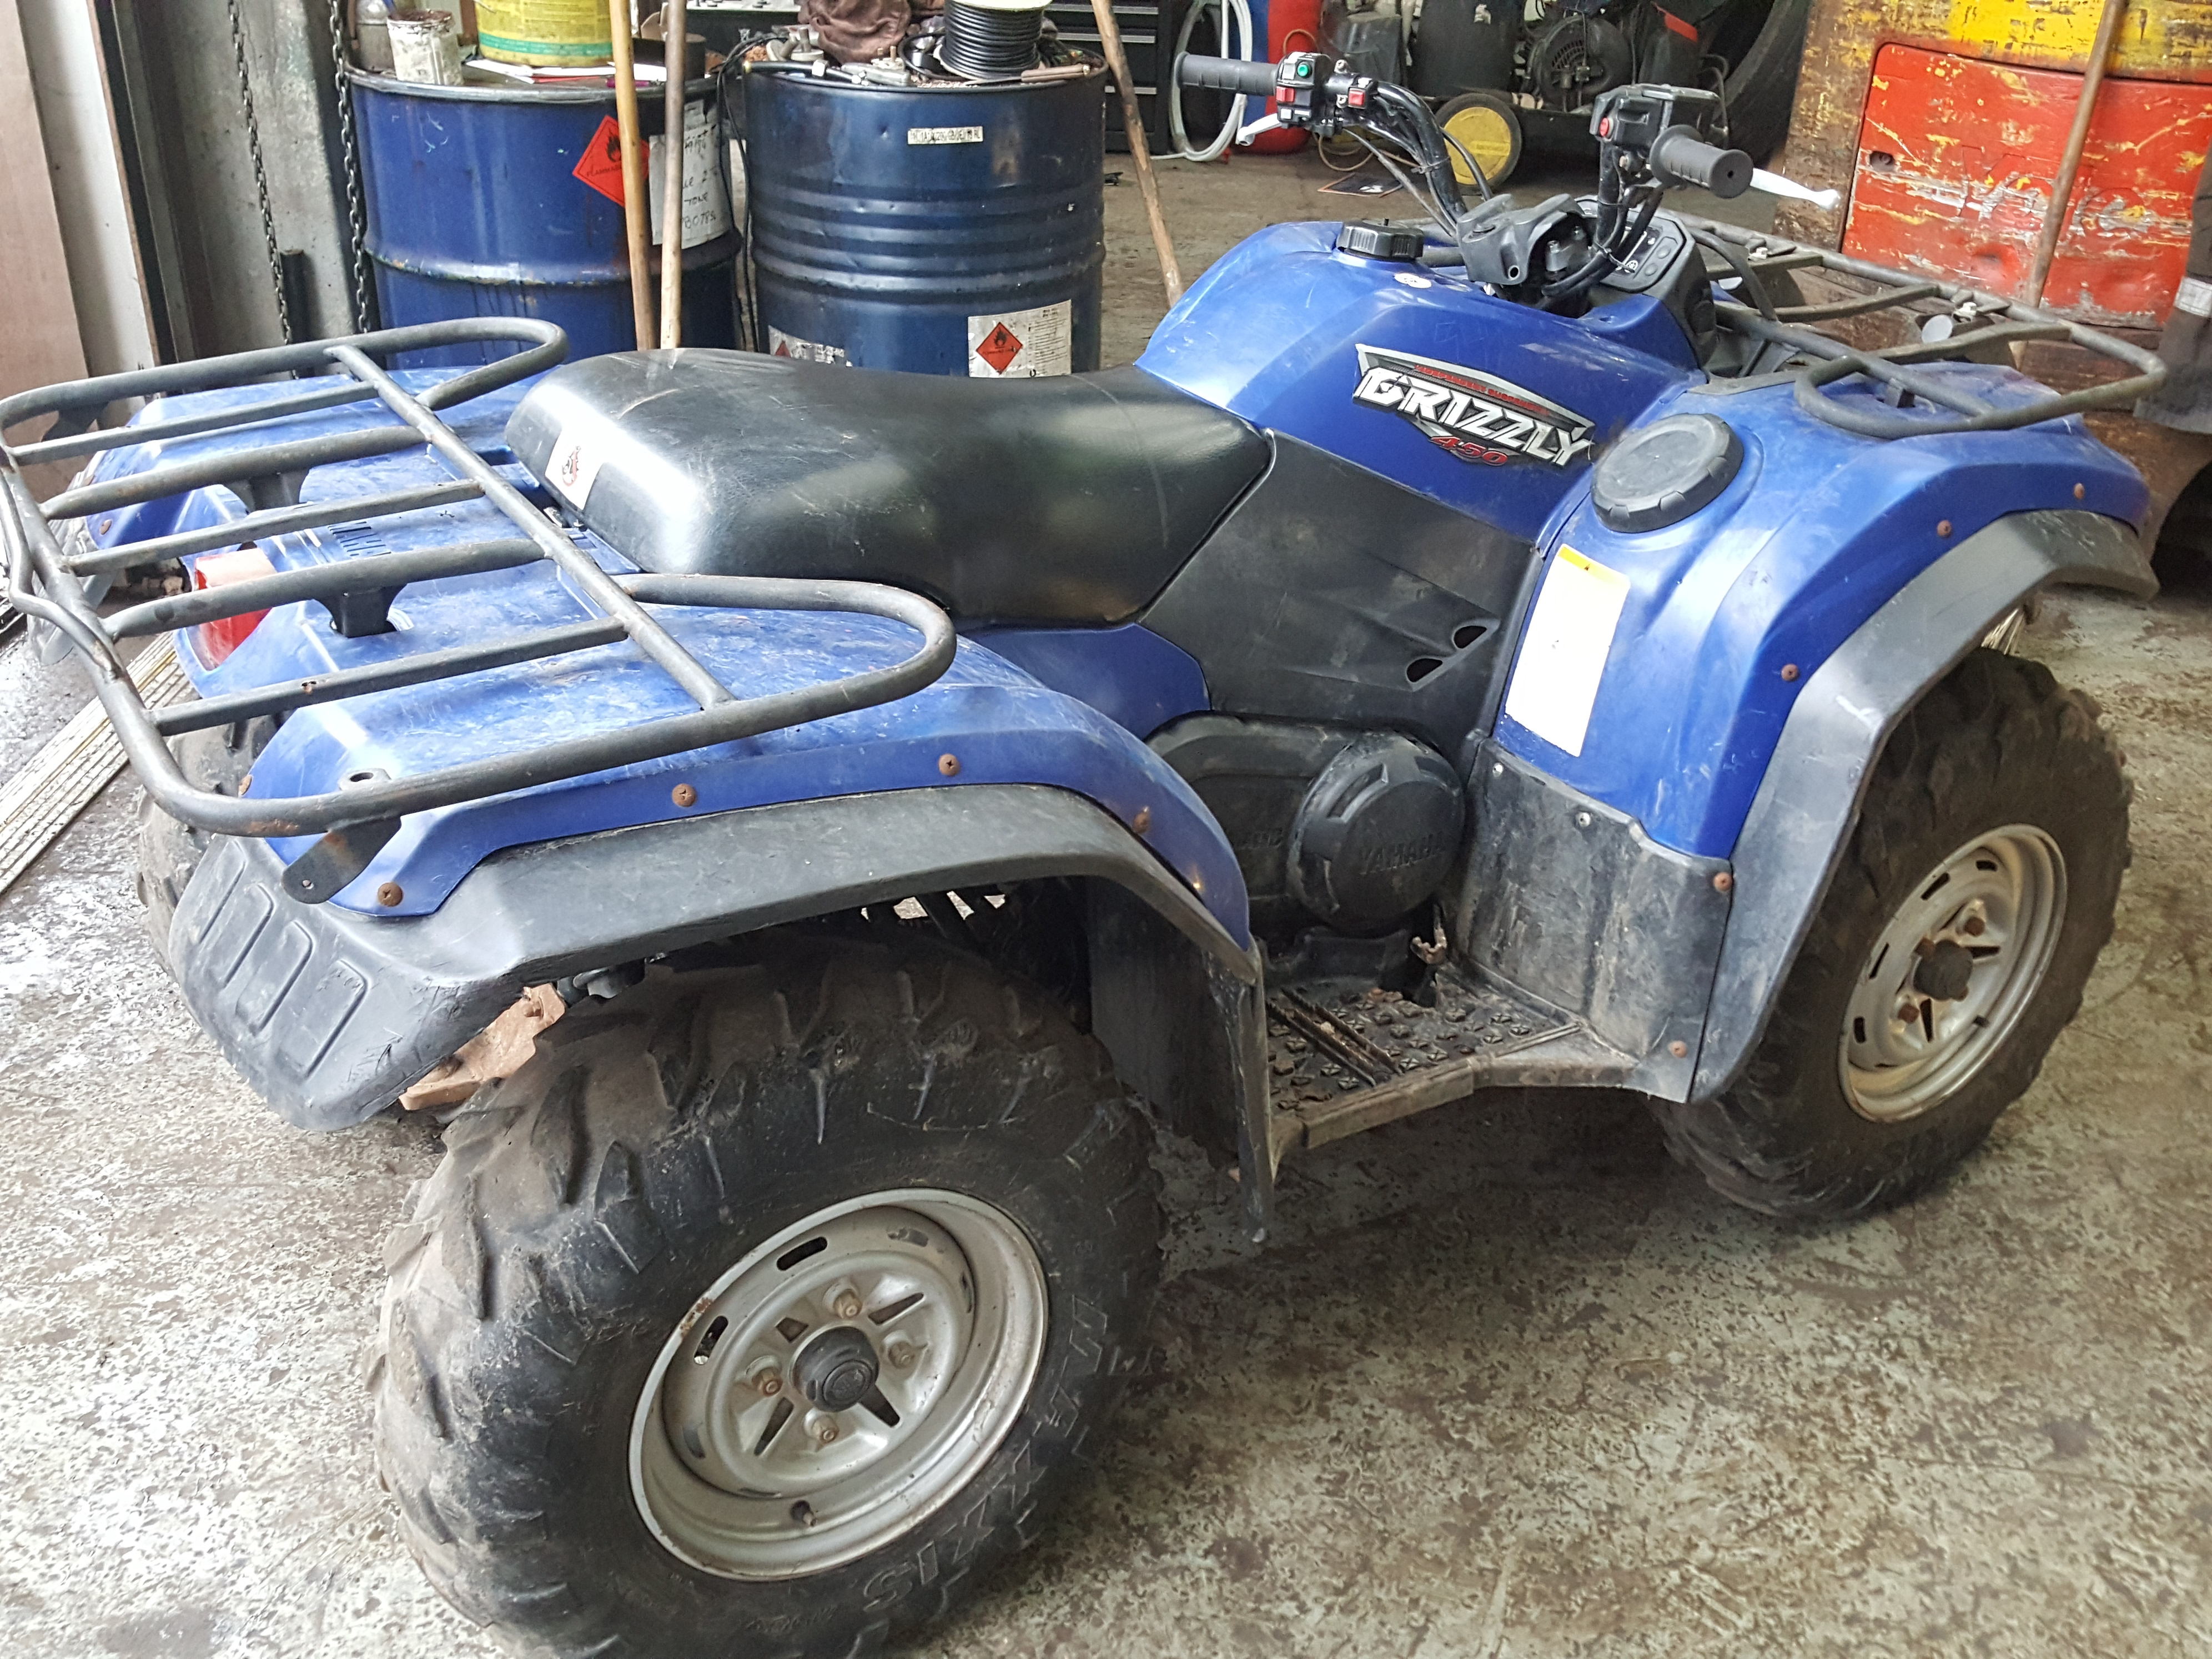 Lot 60 - 2009 Yamaha 450 Grizzly 4X4 Farm Quad with Diff Lock